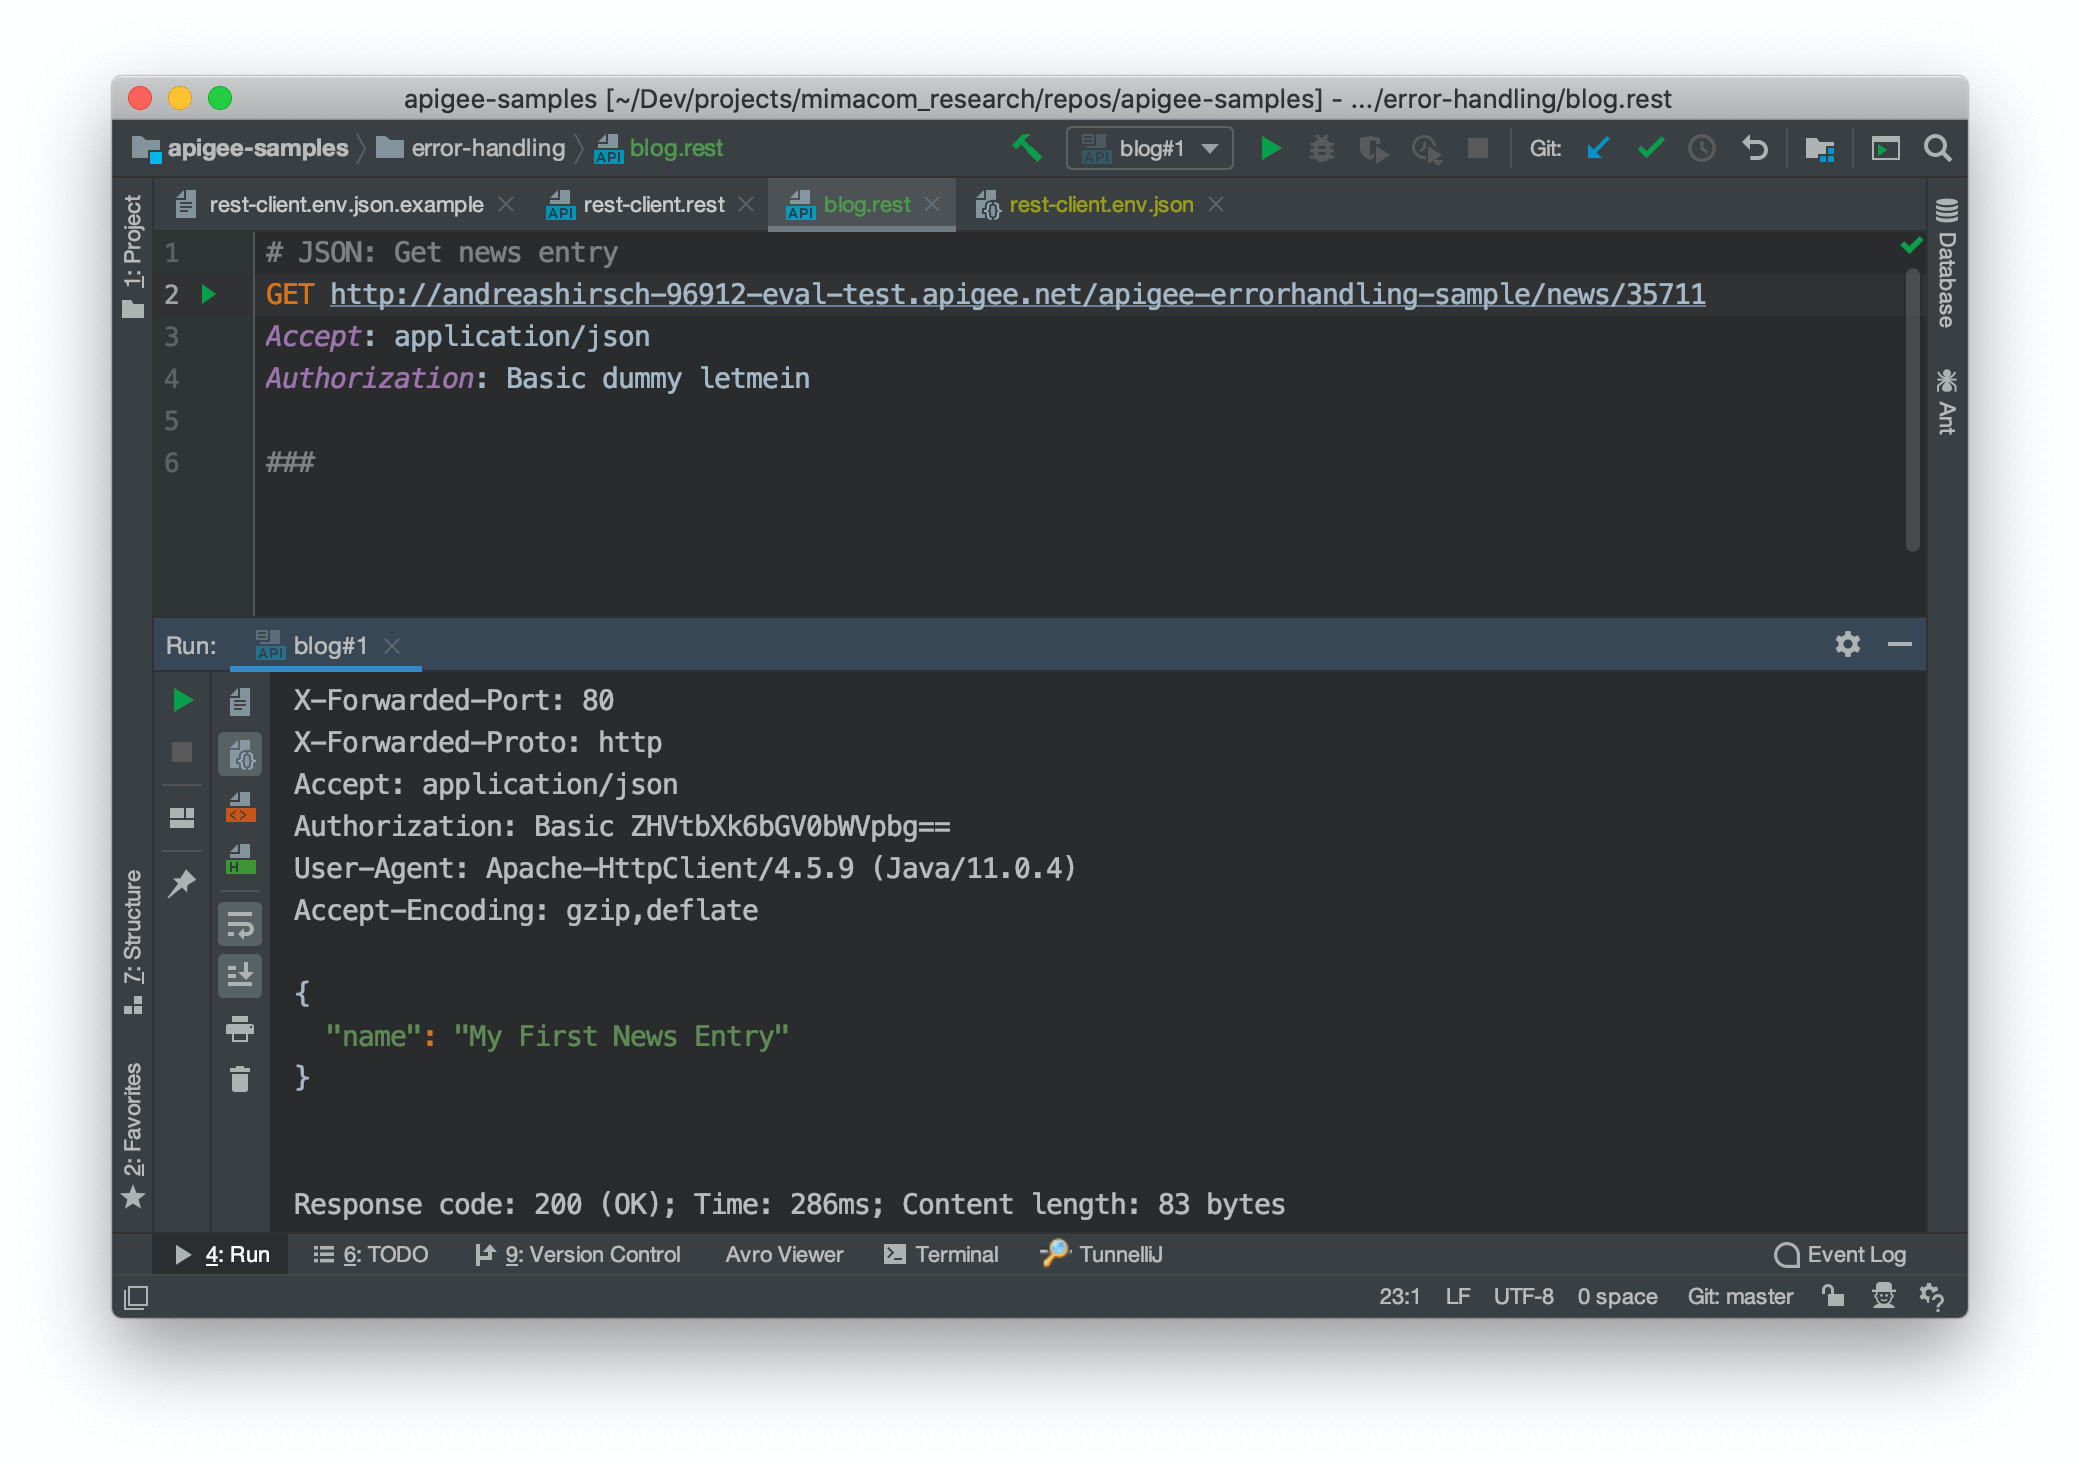 Using IntelliJ Idea to Send a Request to a REST API